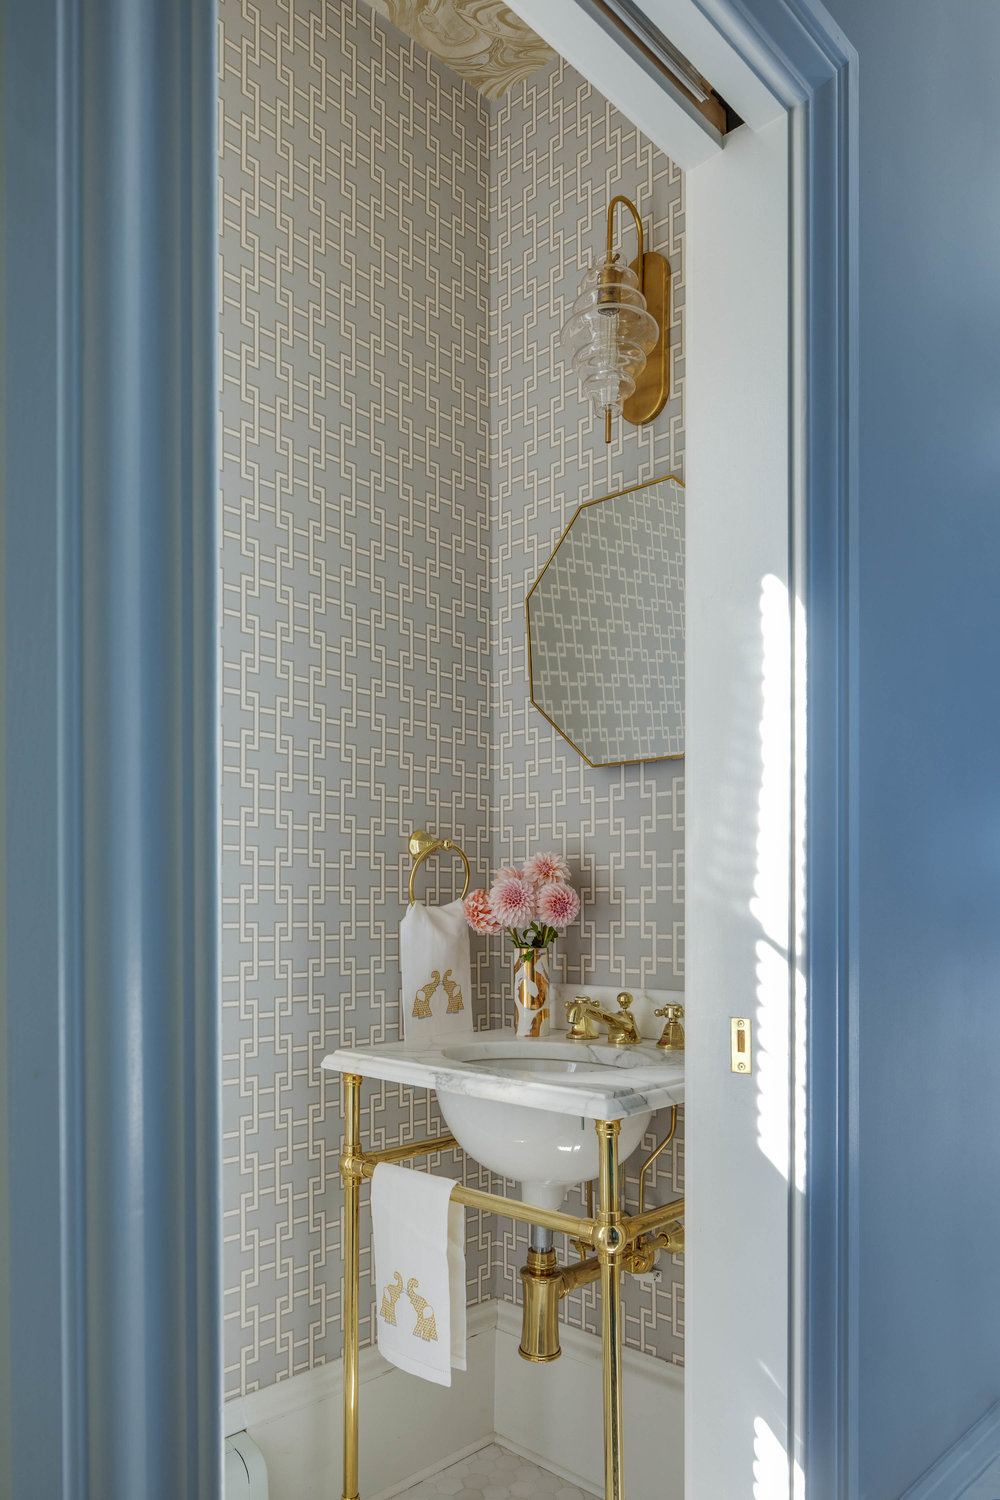 Digs Design, Digs, Digs Design Company, Interior Design, Jocelyn Chiappone, Rhode Island, Newport, Providence, Benefit Street, Mudroom, Blue Cabinets, Tile floor